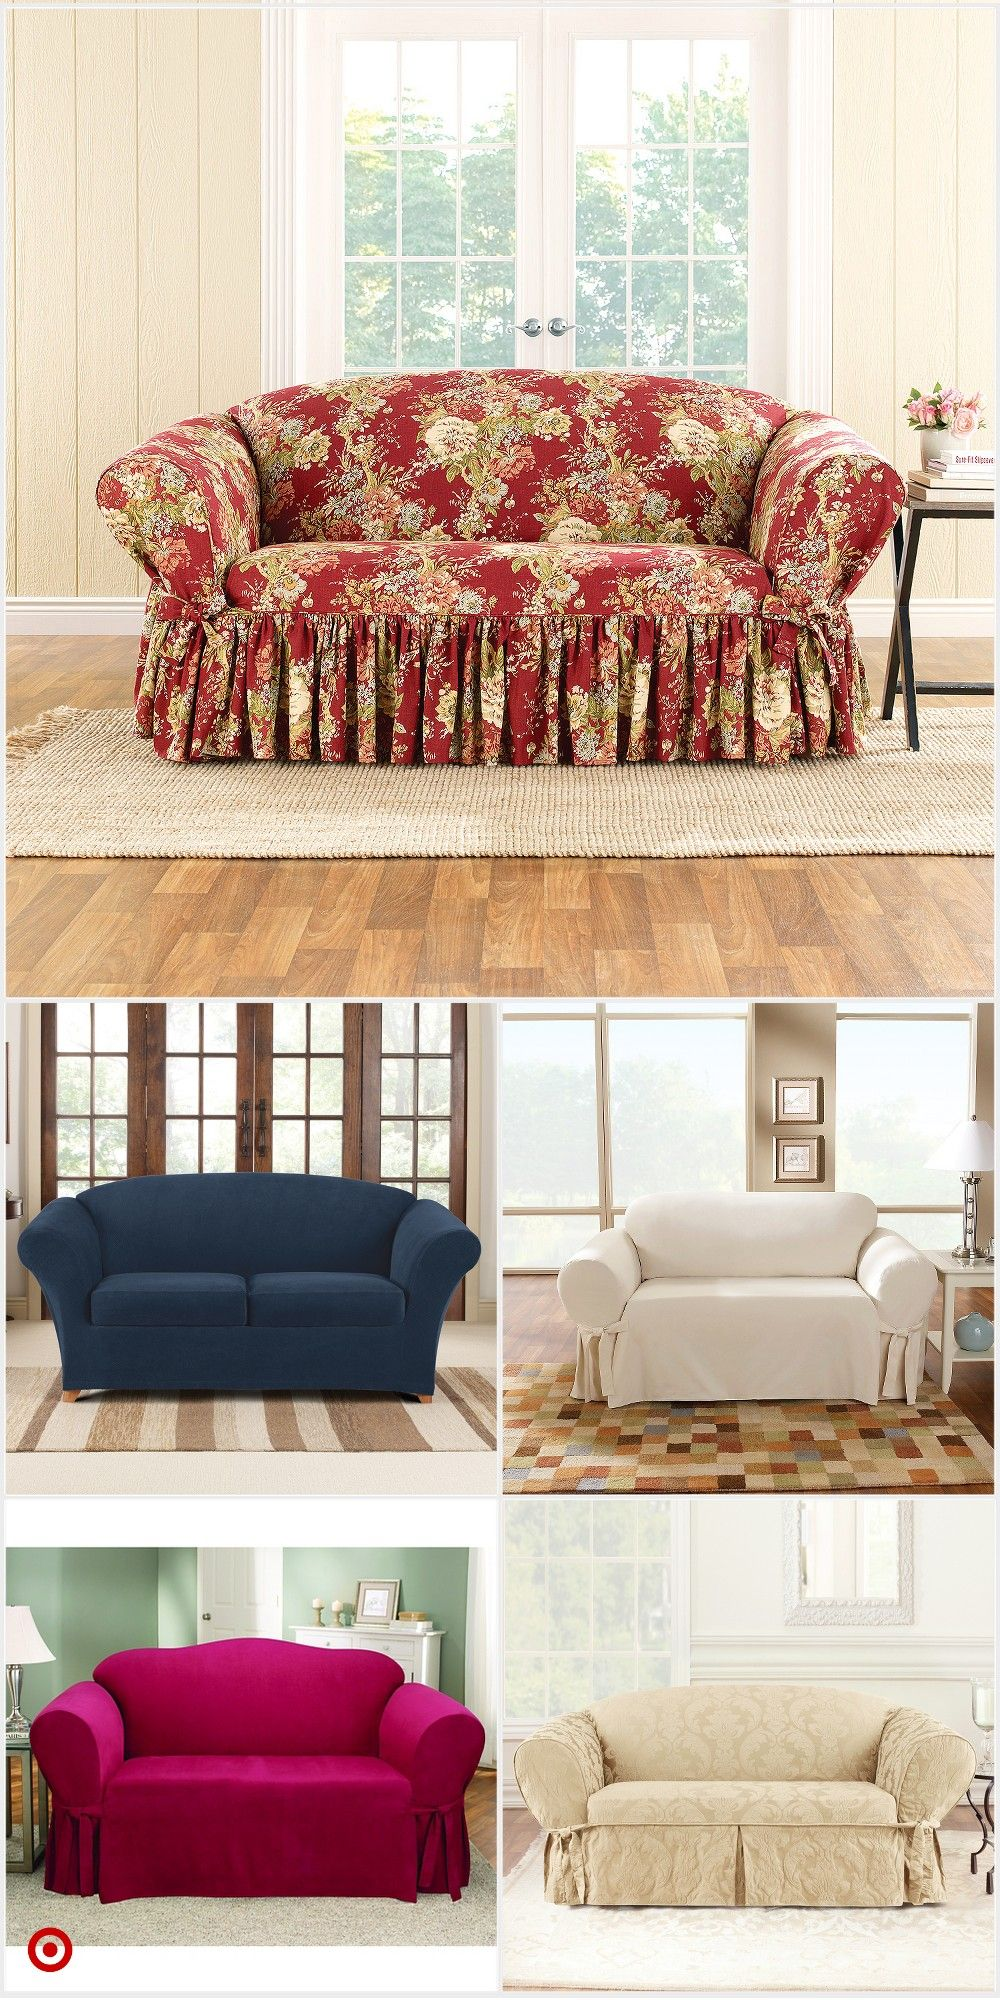 Shop Target For Loveseat Slipcover You Will Love At Great Low Prices Free Shipping On Orders Of 3 Shabby Chic Bedroom Furniture Loveseat Slipcovers Love Seat